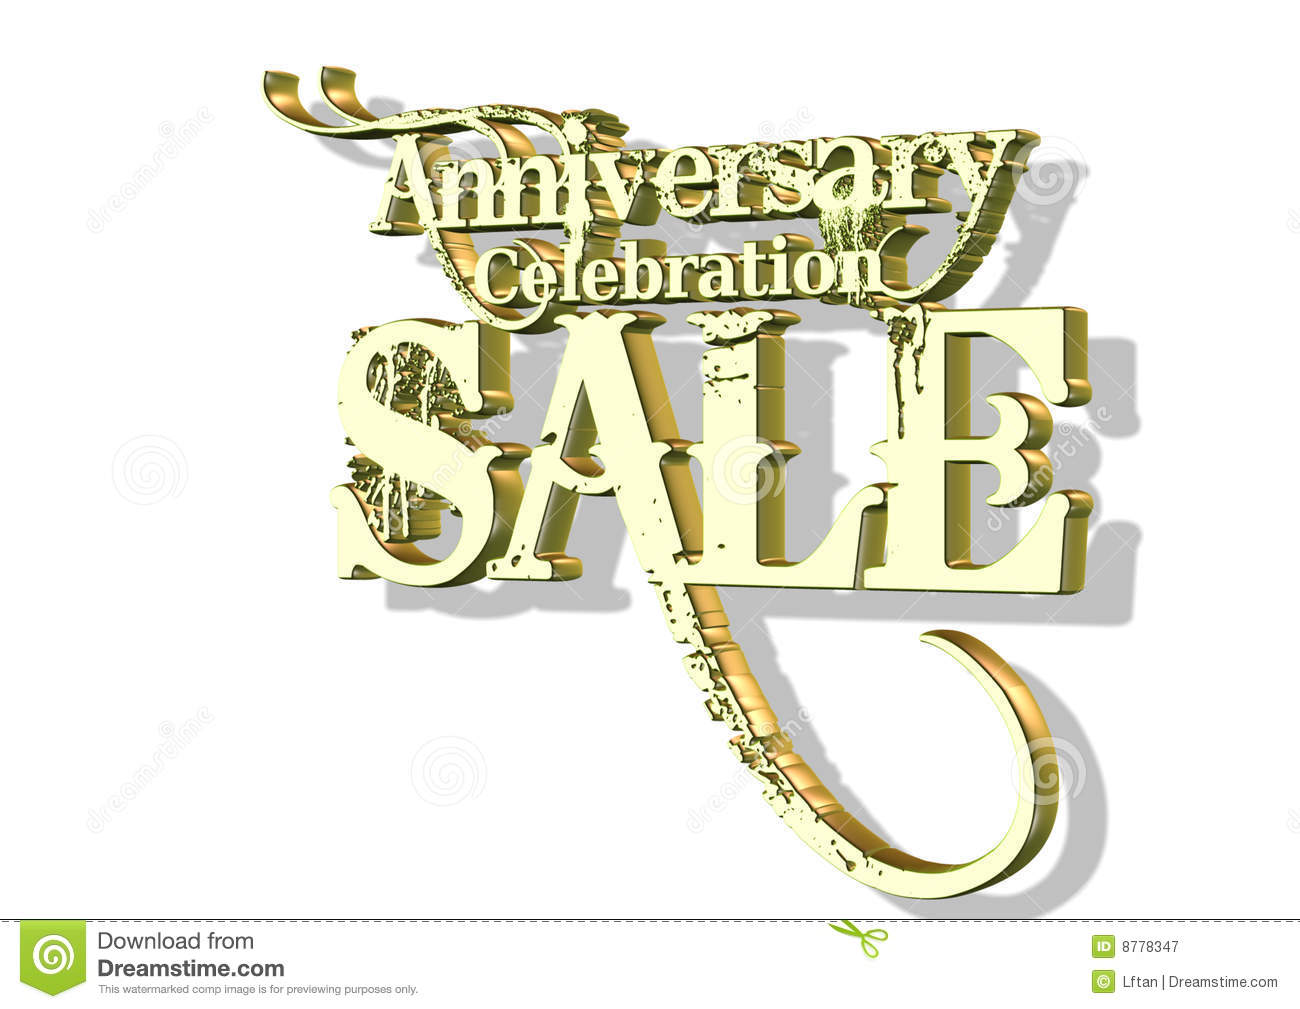 D anniversary celebration sale stock illustration image